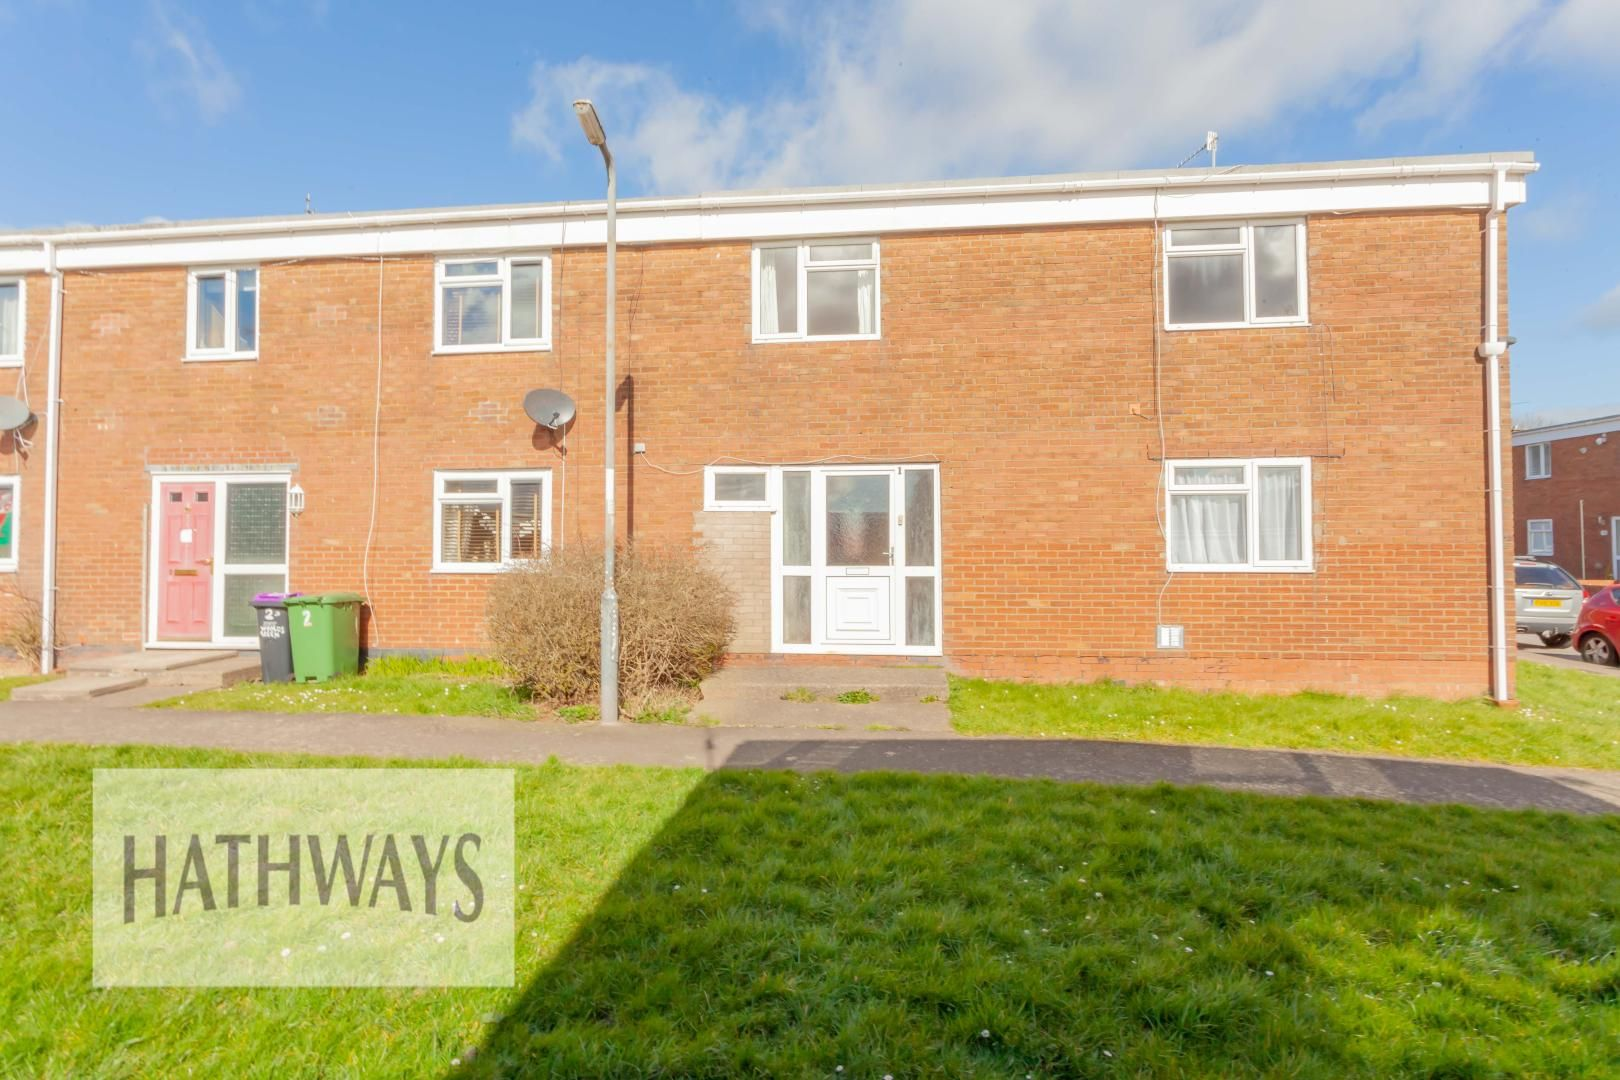 4 bed house for sale in St. Woolos Green, NP44